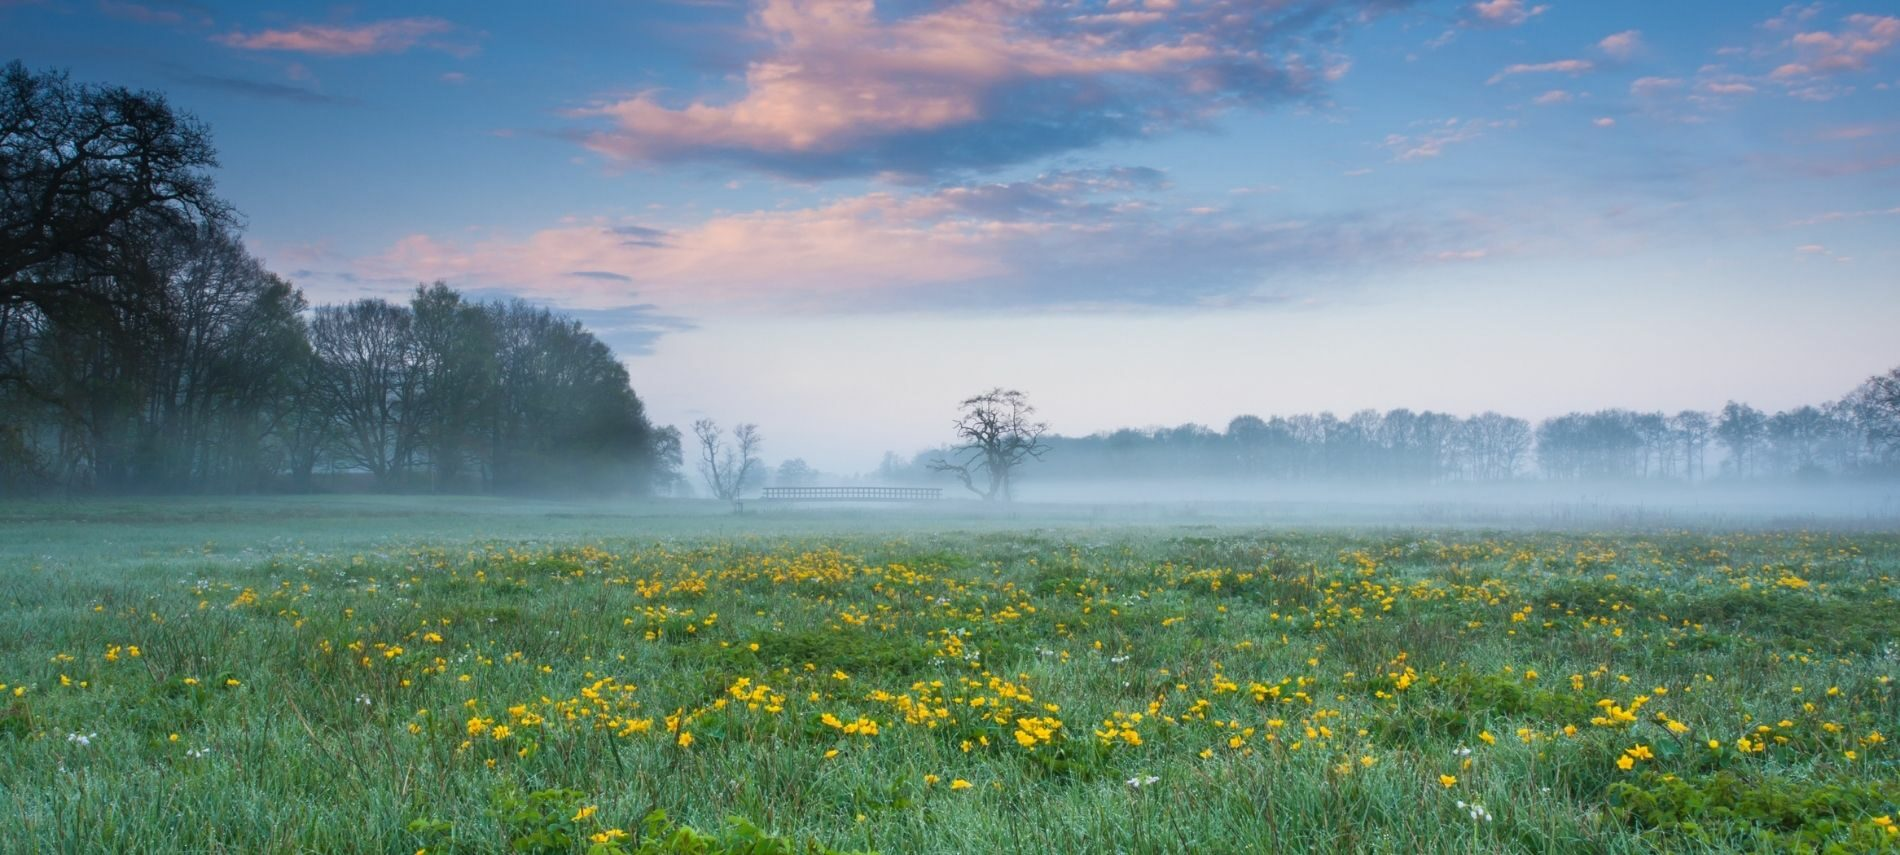 Meadow in the spring with yellow dandelions, green grass, blue sky and trees in the distance